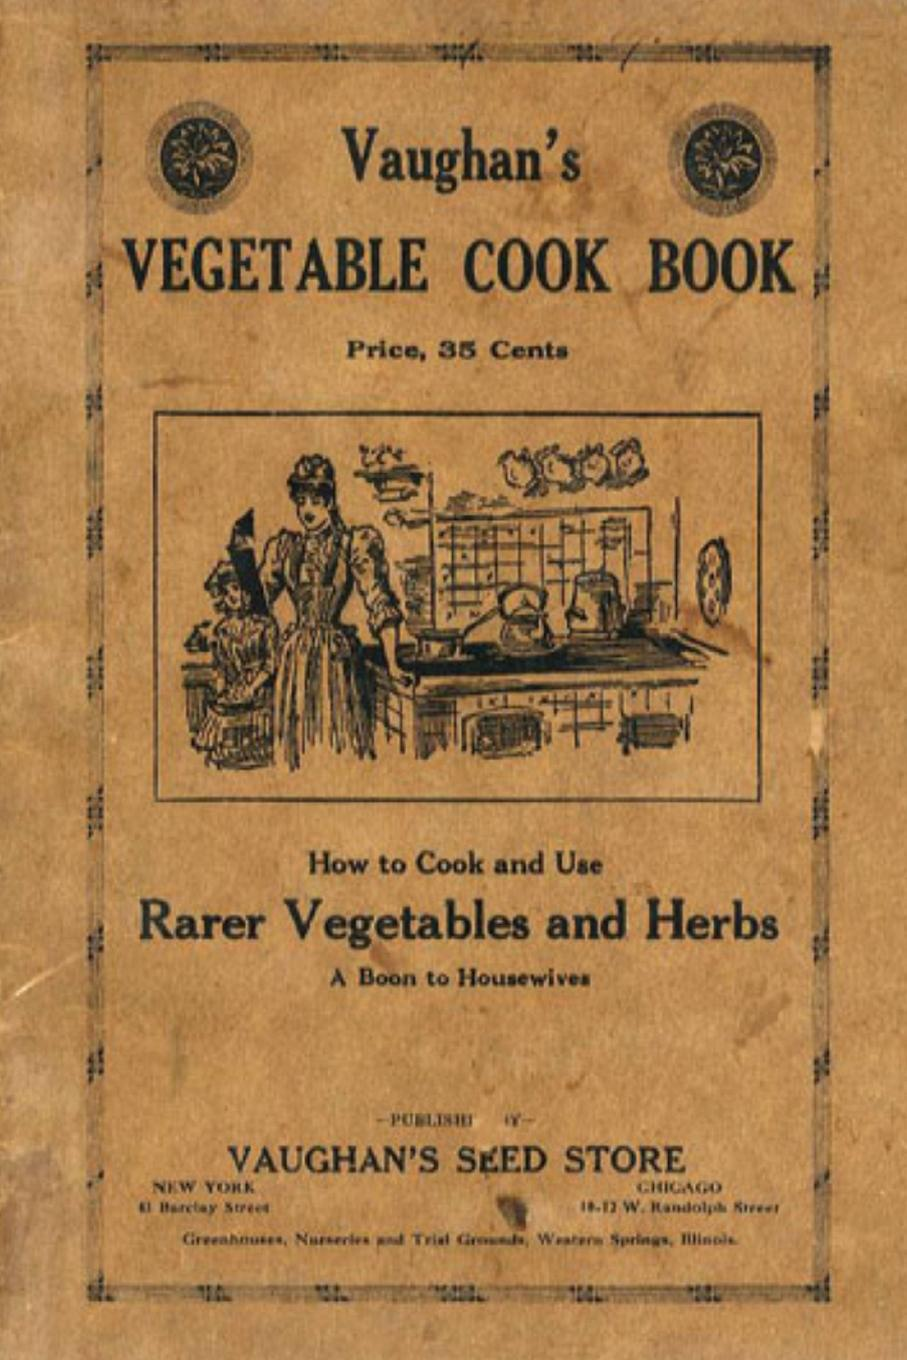 Vaughan's Seed Store Vaughan.s Vegetable Cook Book. How to Cook and Use Rarer Vegetables and Herbs kenneth norman cook from dark corners and dusty attics